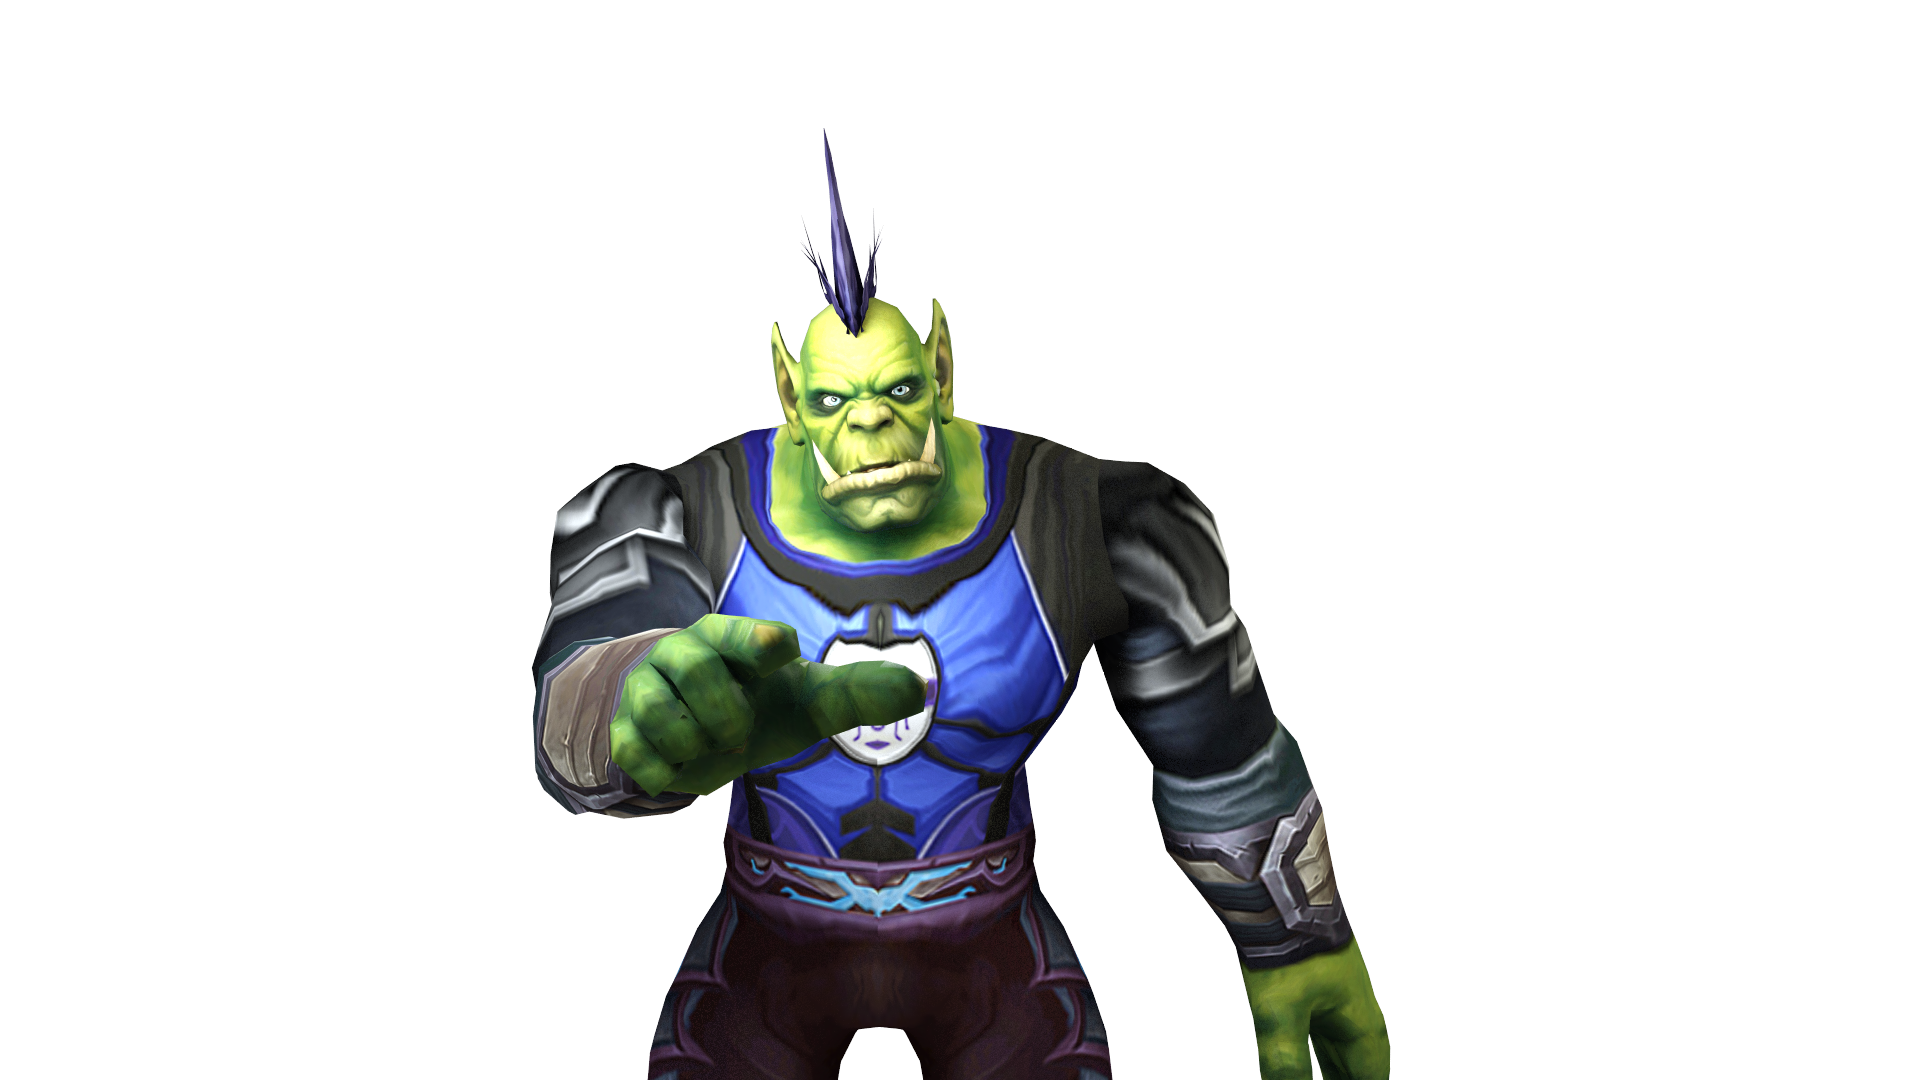 uploads orc orc PNG30 43